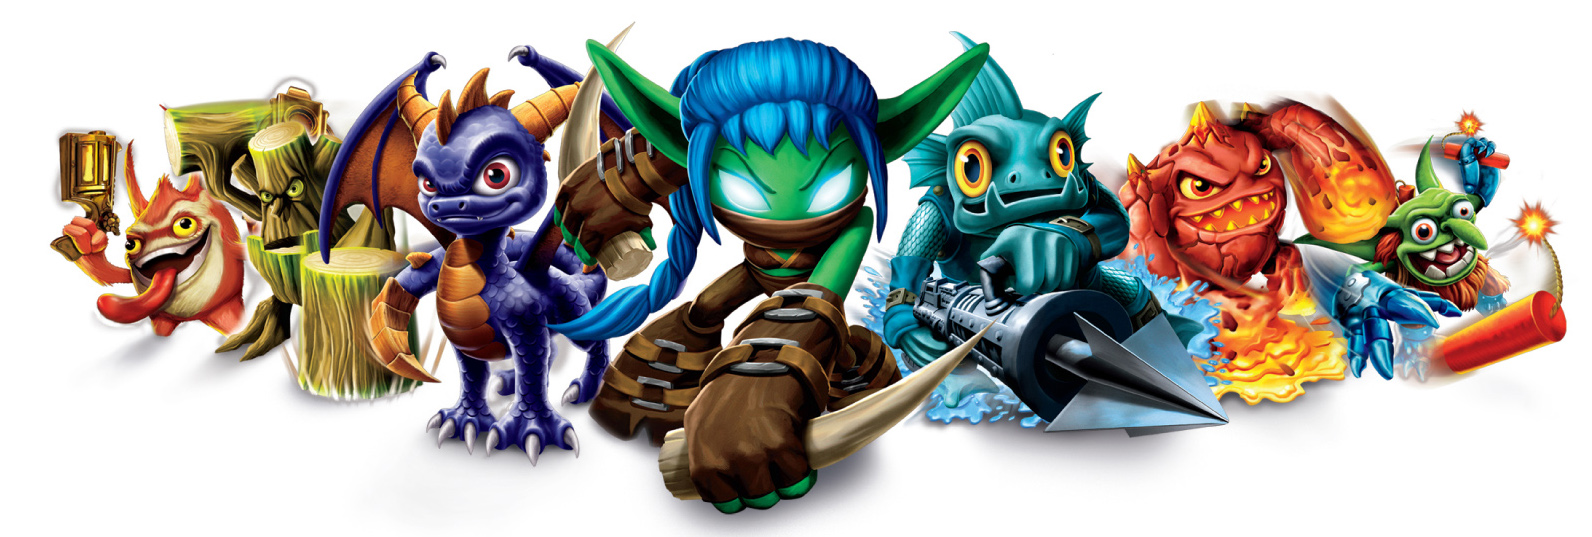 New Skylanders Game To Be Revealed This Month!